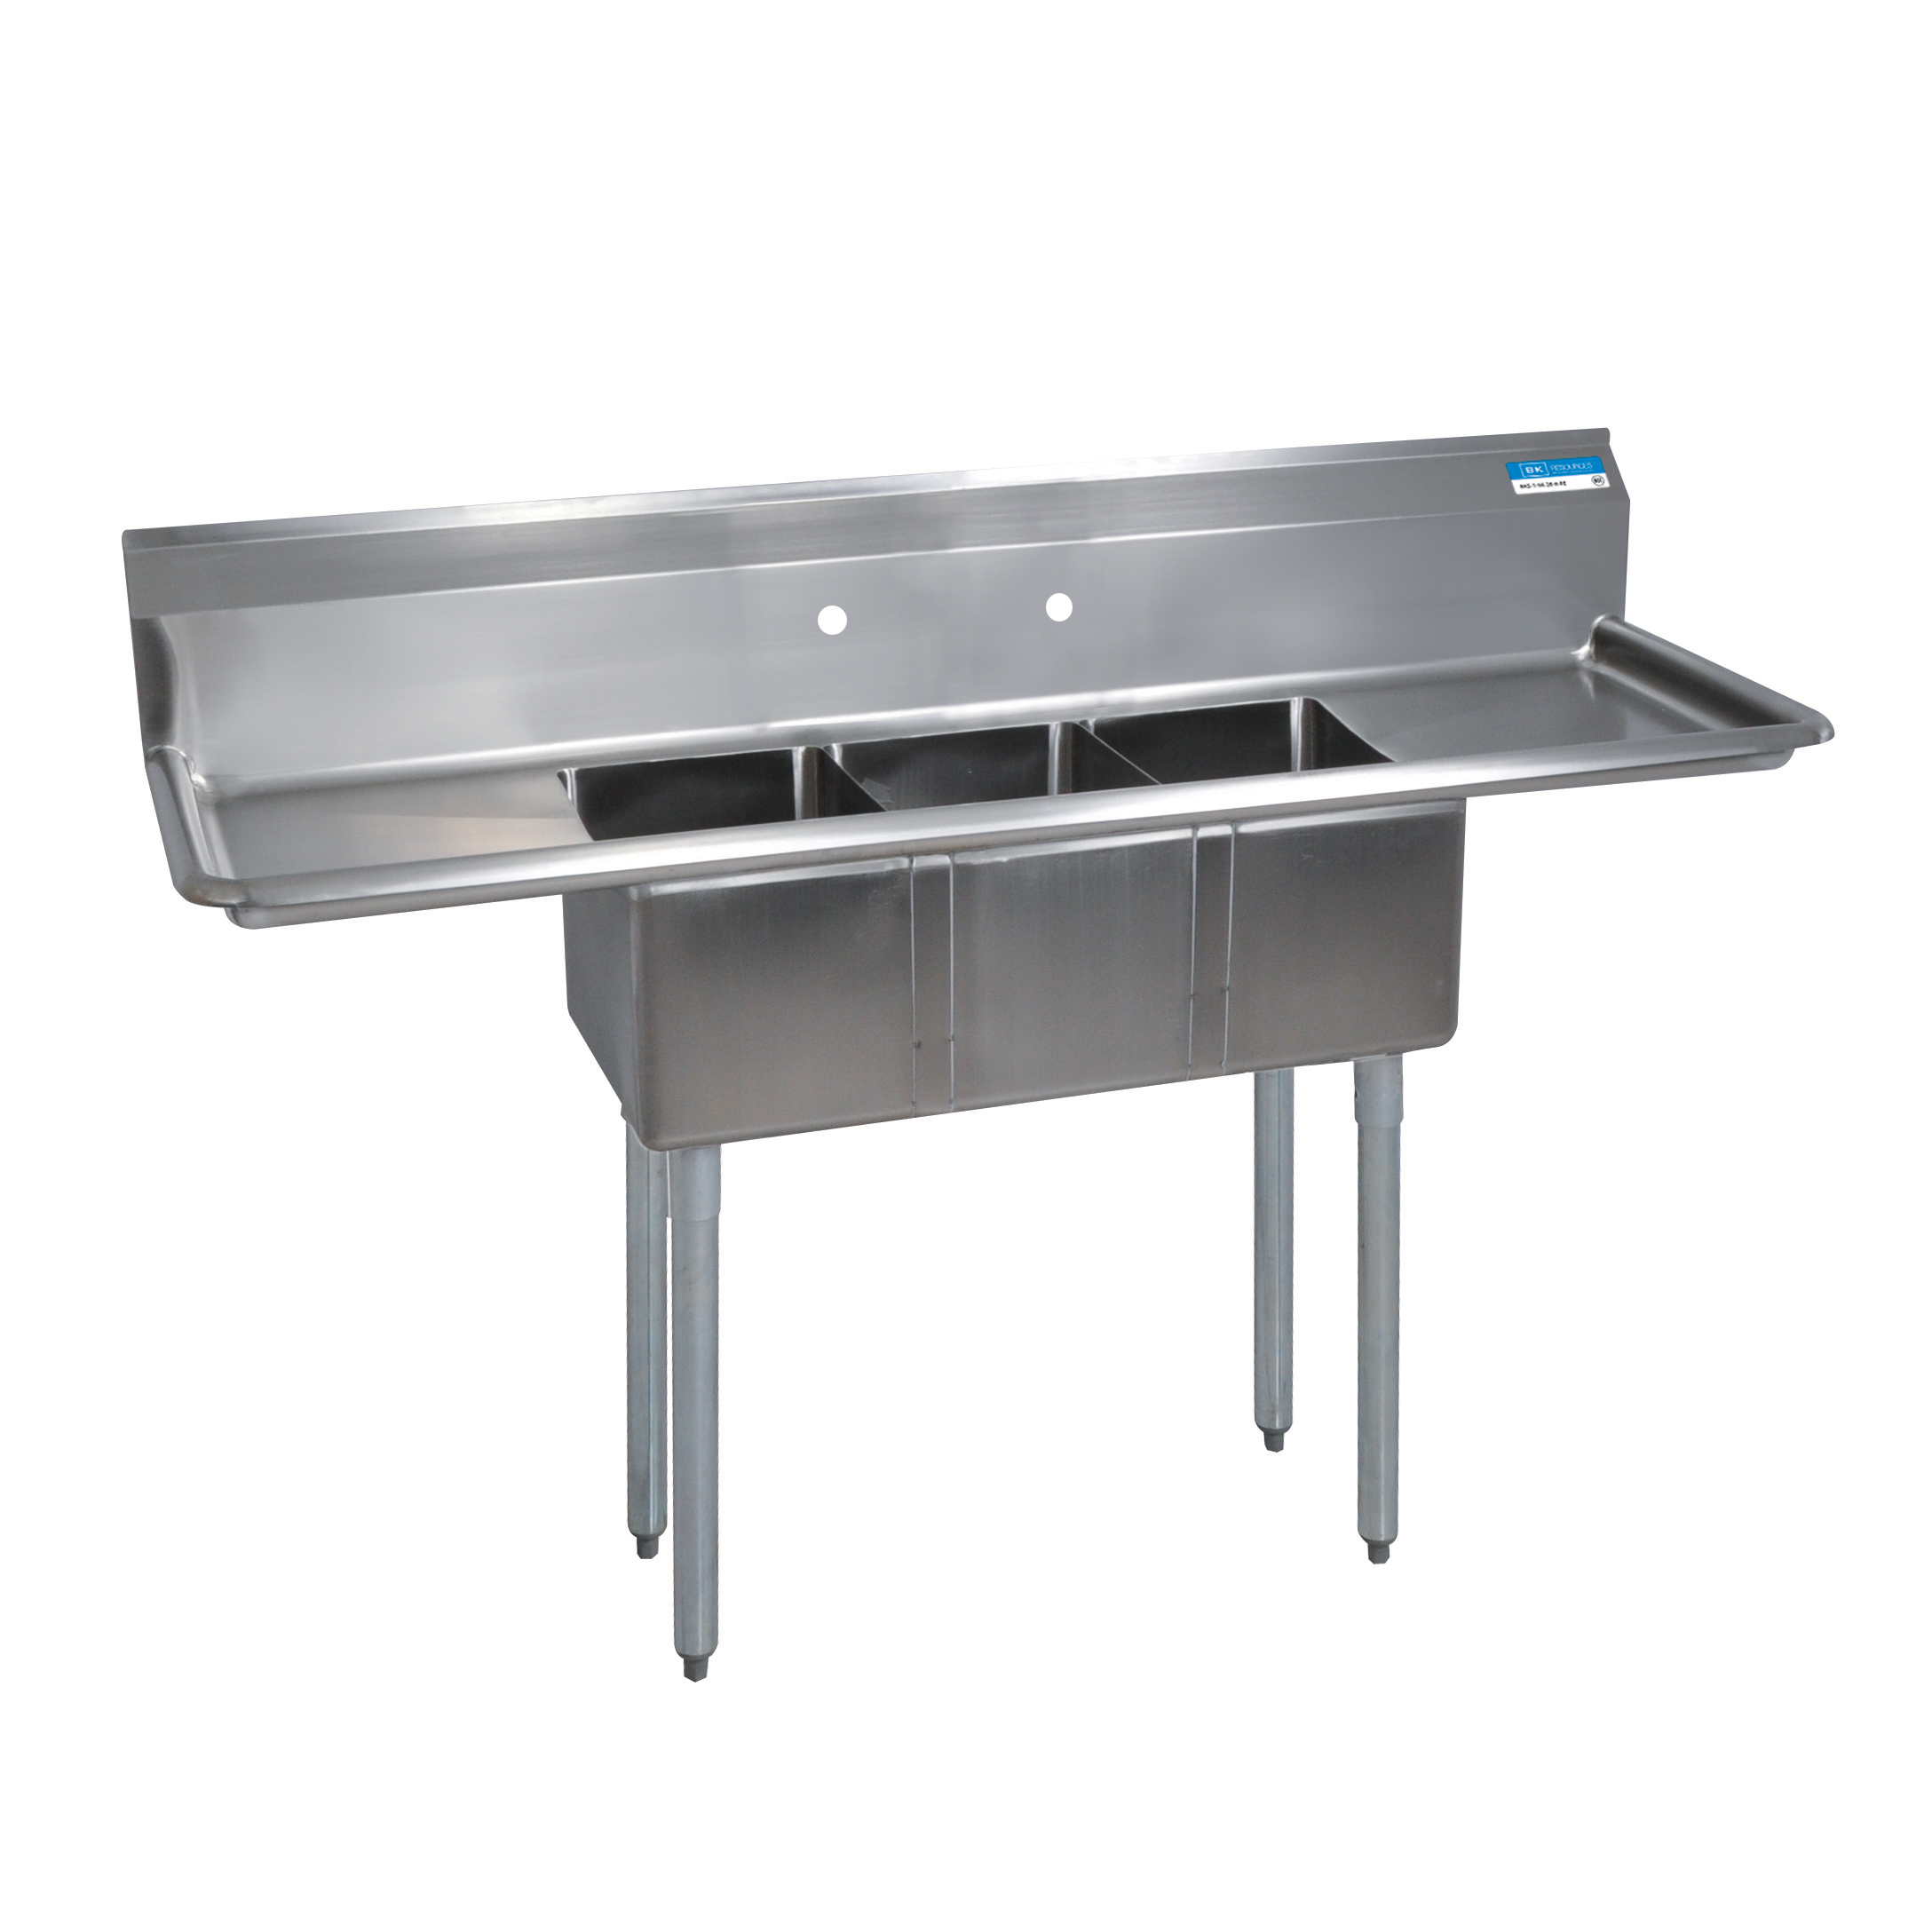 BK Resources BKS-3-1014-10-15TS sink, (3) three compartment